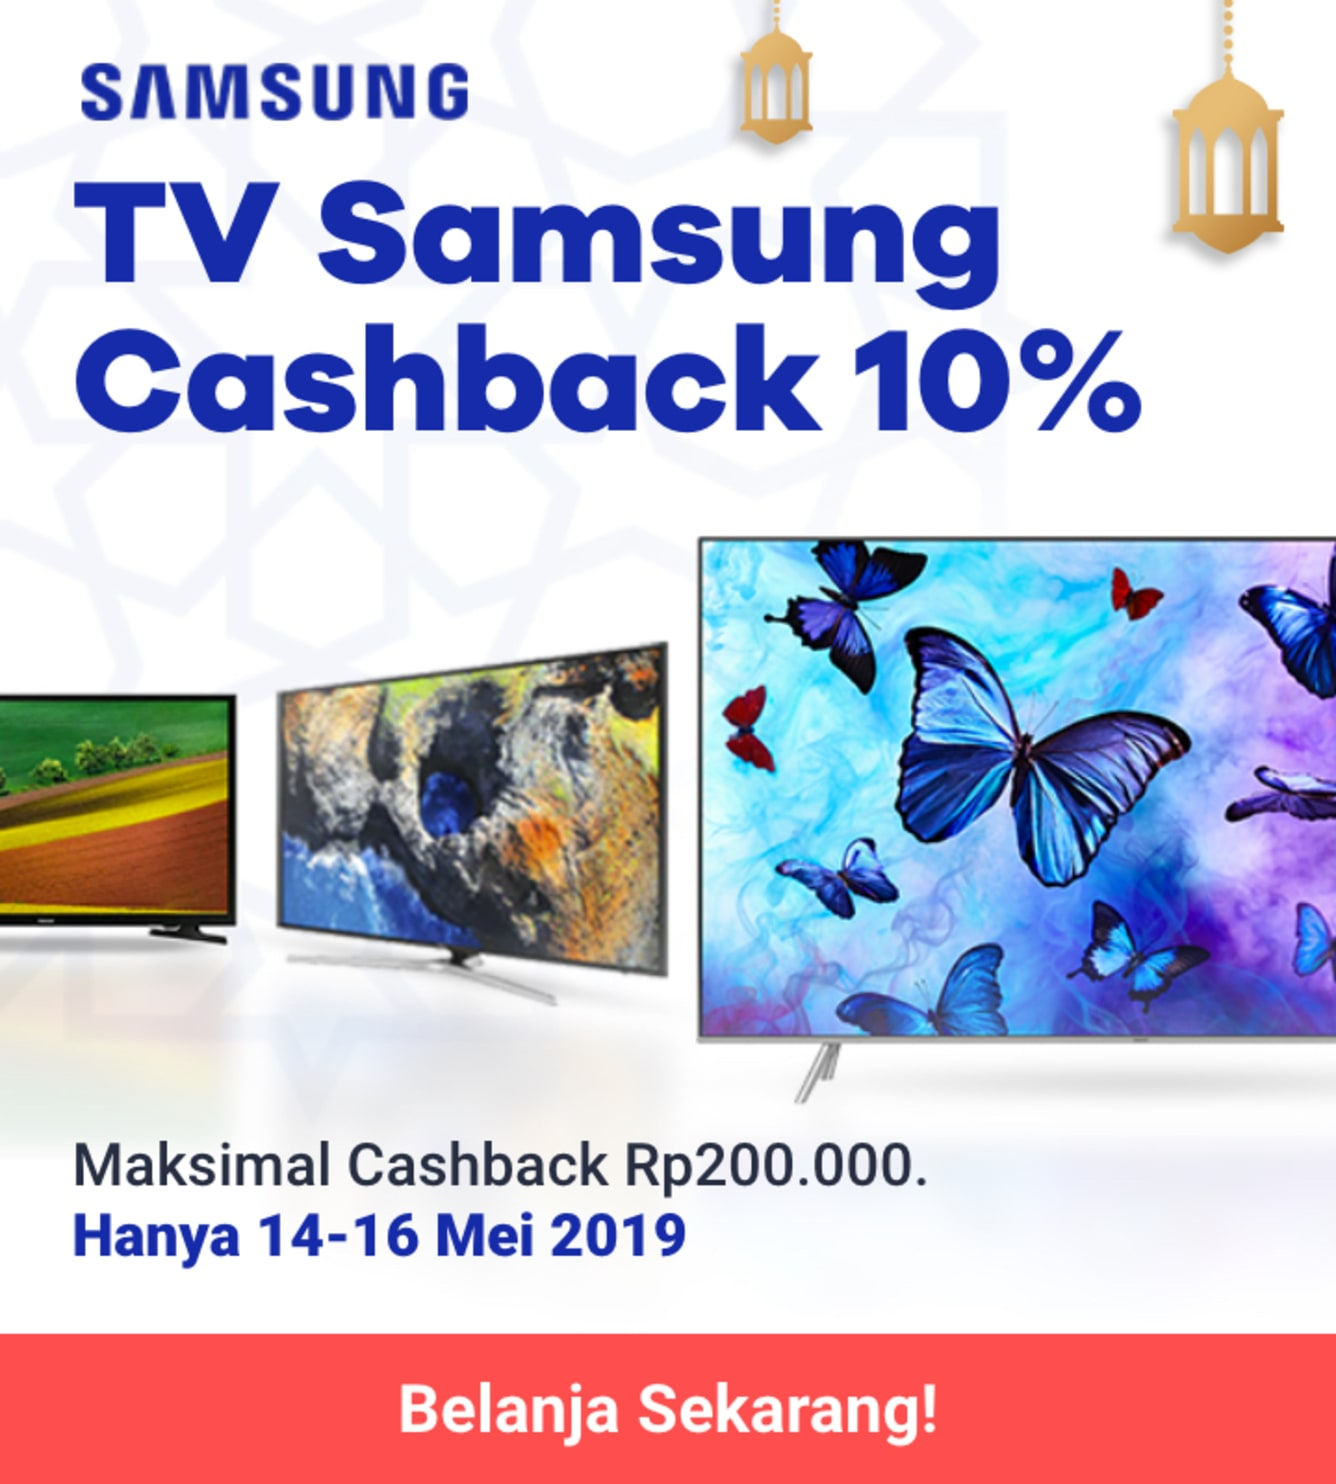 Week 20 - Promo Samsung TV